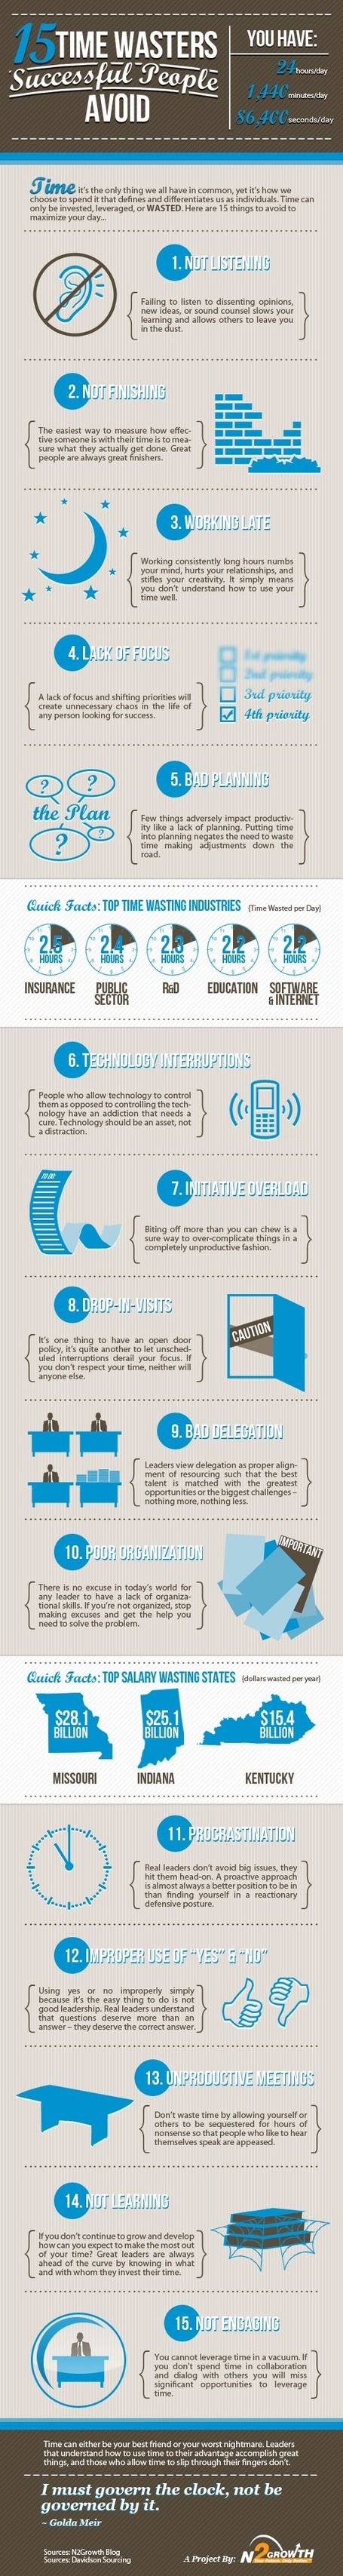 15 Time Wasters Succesful People Avoid #Infographic | CrowdSourcing InfoGraphics | Scoop.it